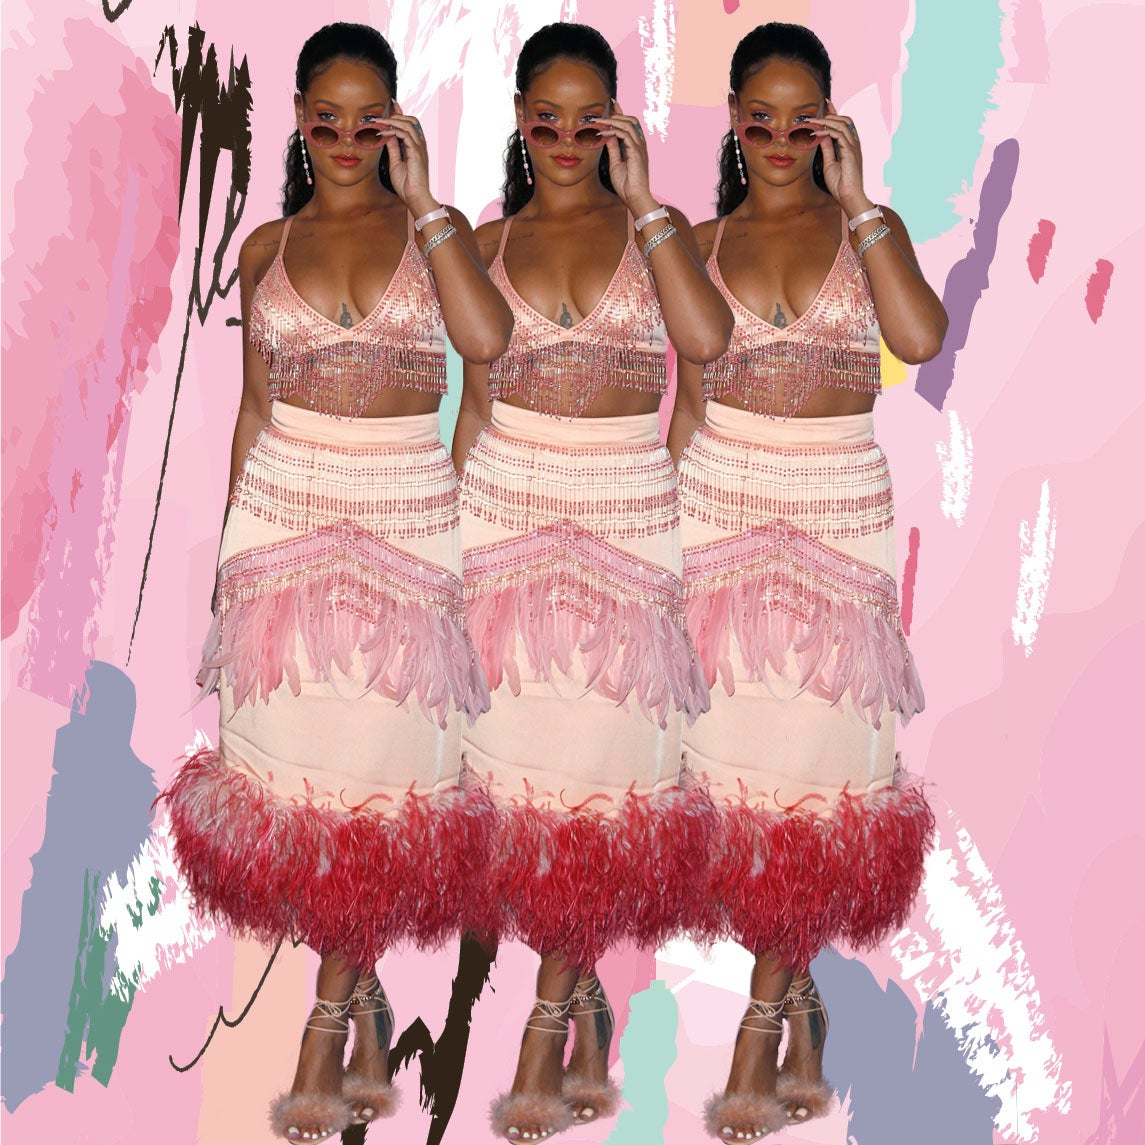 Rihanna Continues Style Reign With Pink Prada Moment of Epic Proportions